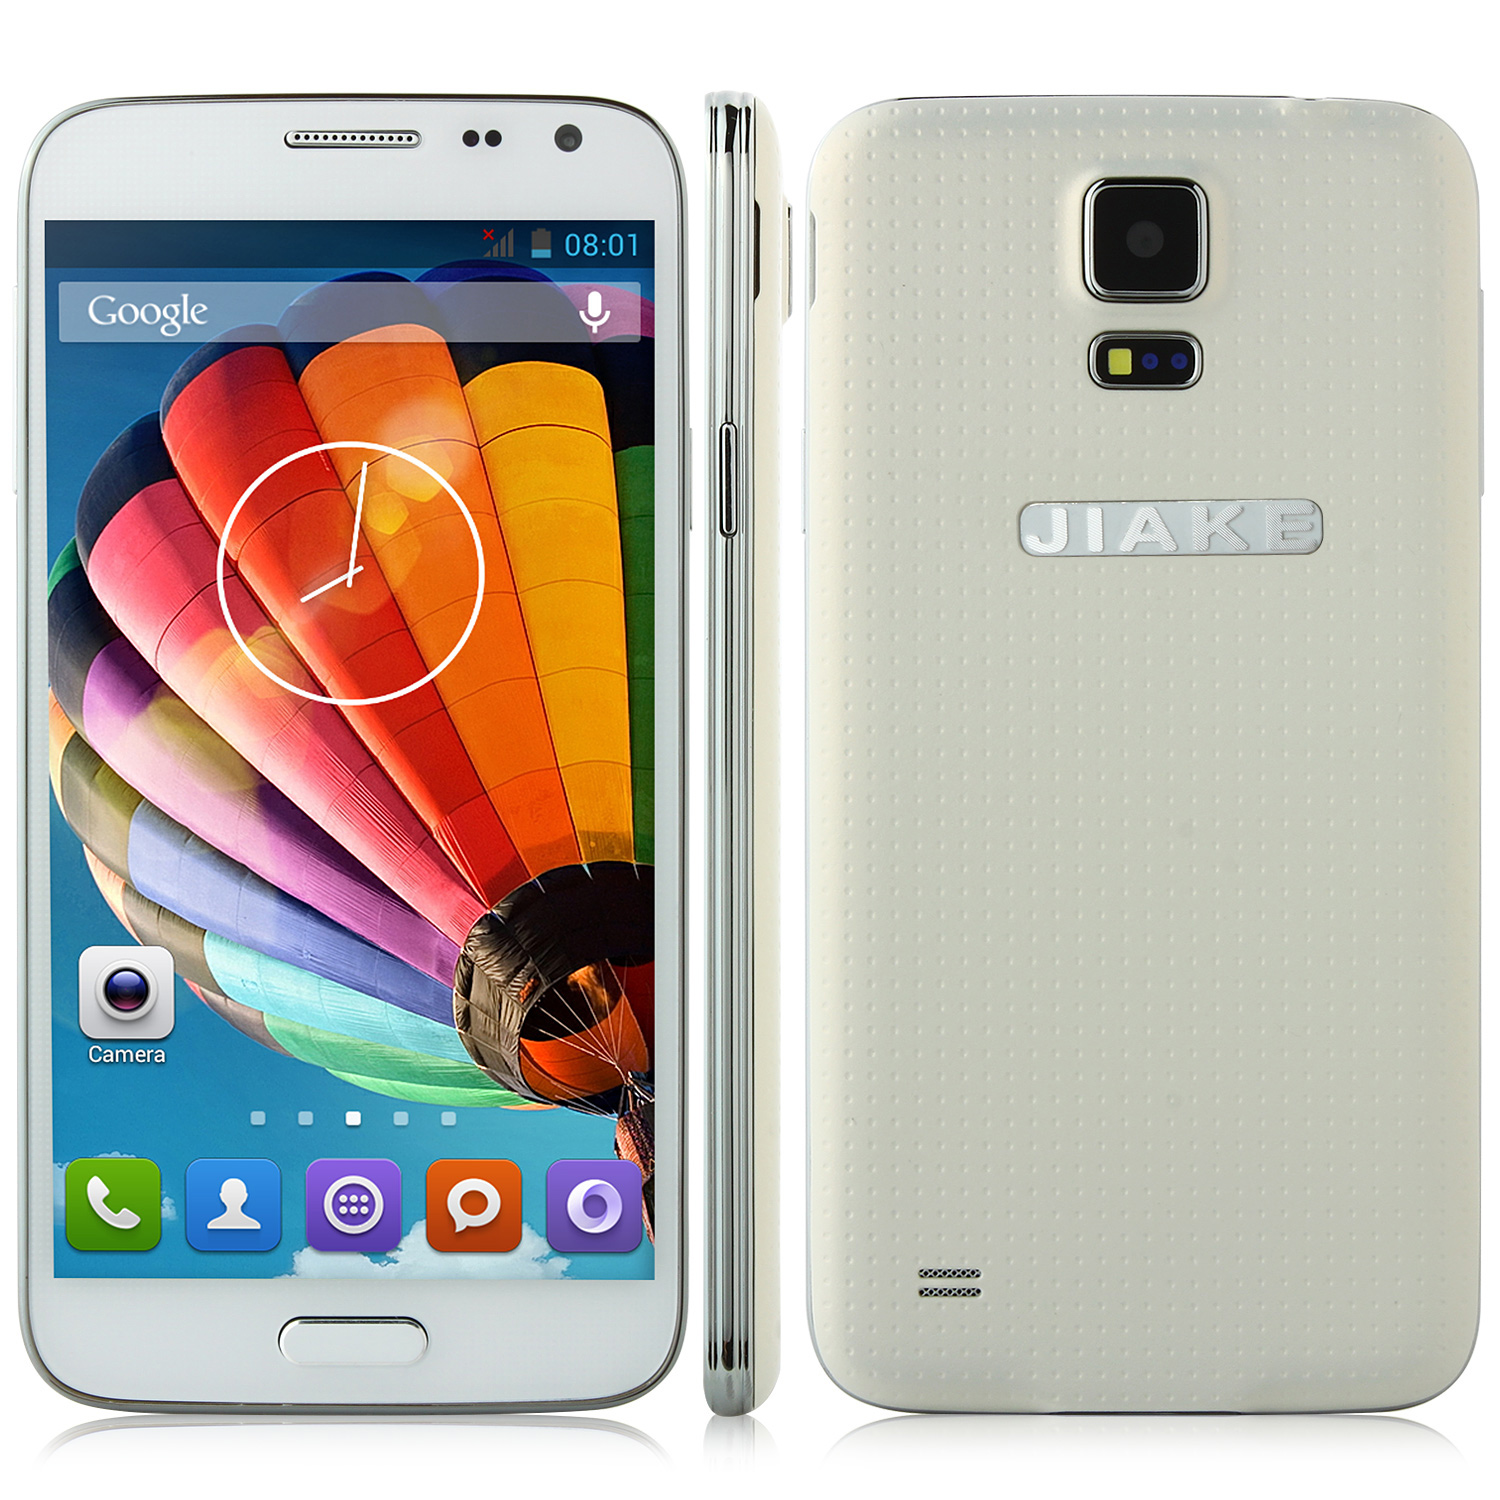 JIAKE G900W Smartphone Android 4.2 MTK6582 5.0 Inch Gesture Sensing 3G GPS White